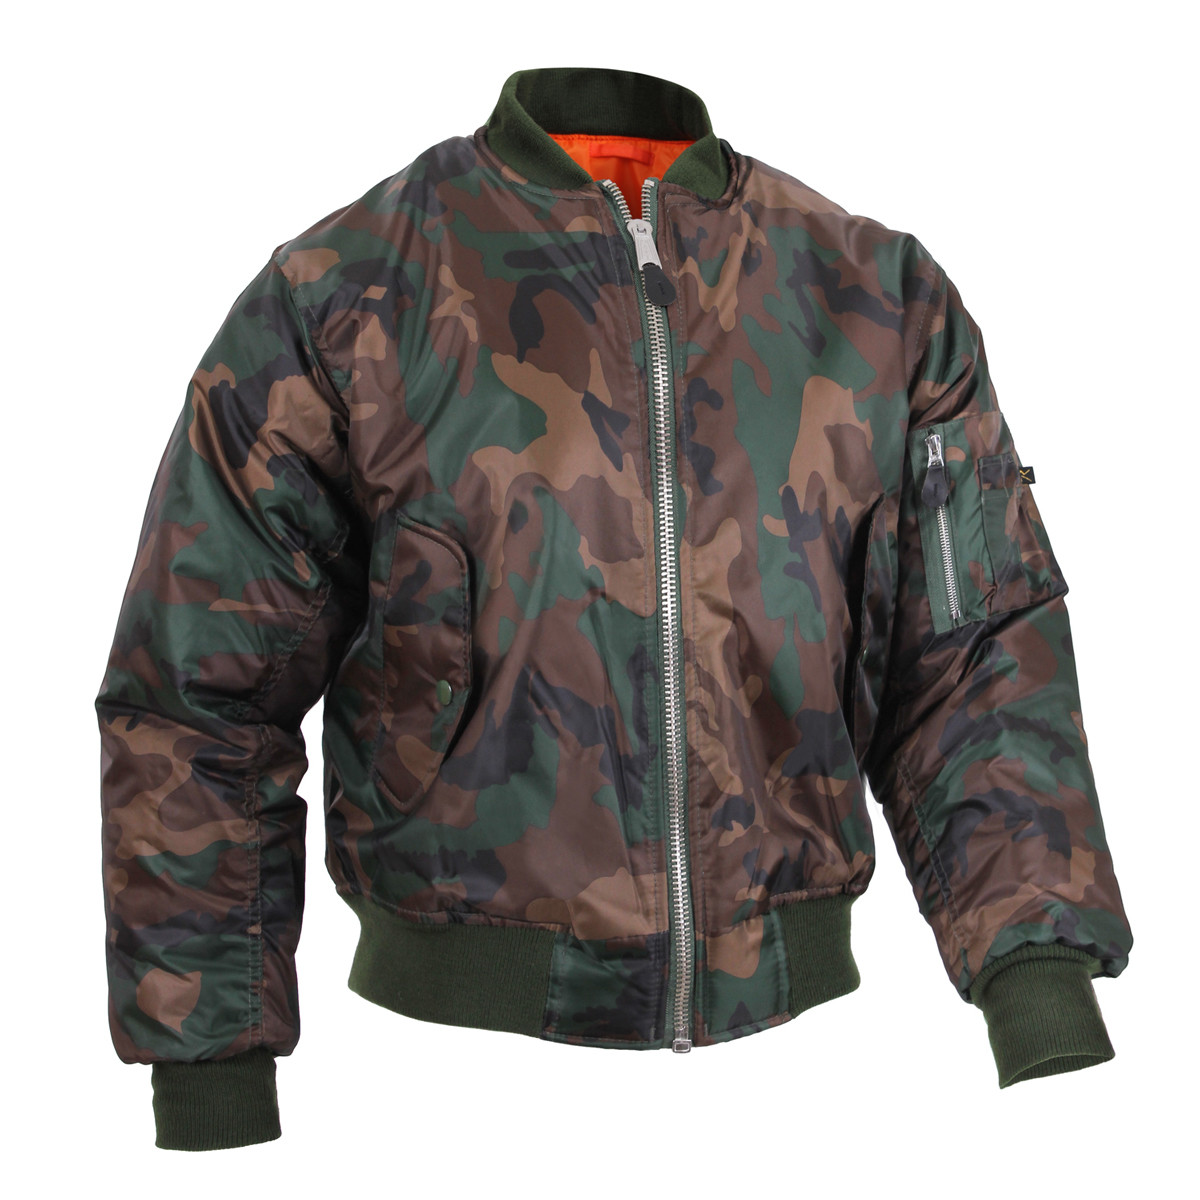 16971cf42 Rothco Woodland Camo MA-1 Flight Jacket